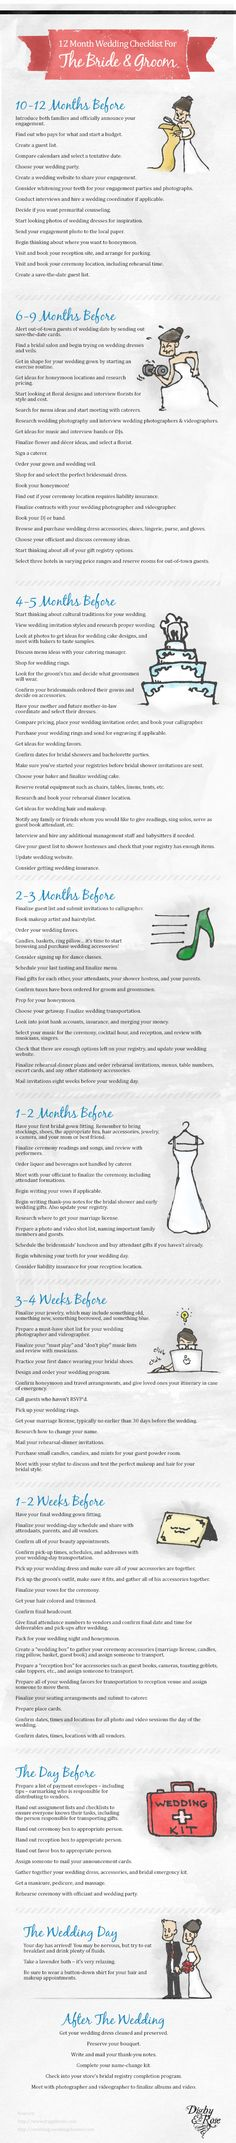 hands down THE BEST list:12 month wedding planning checklist